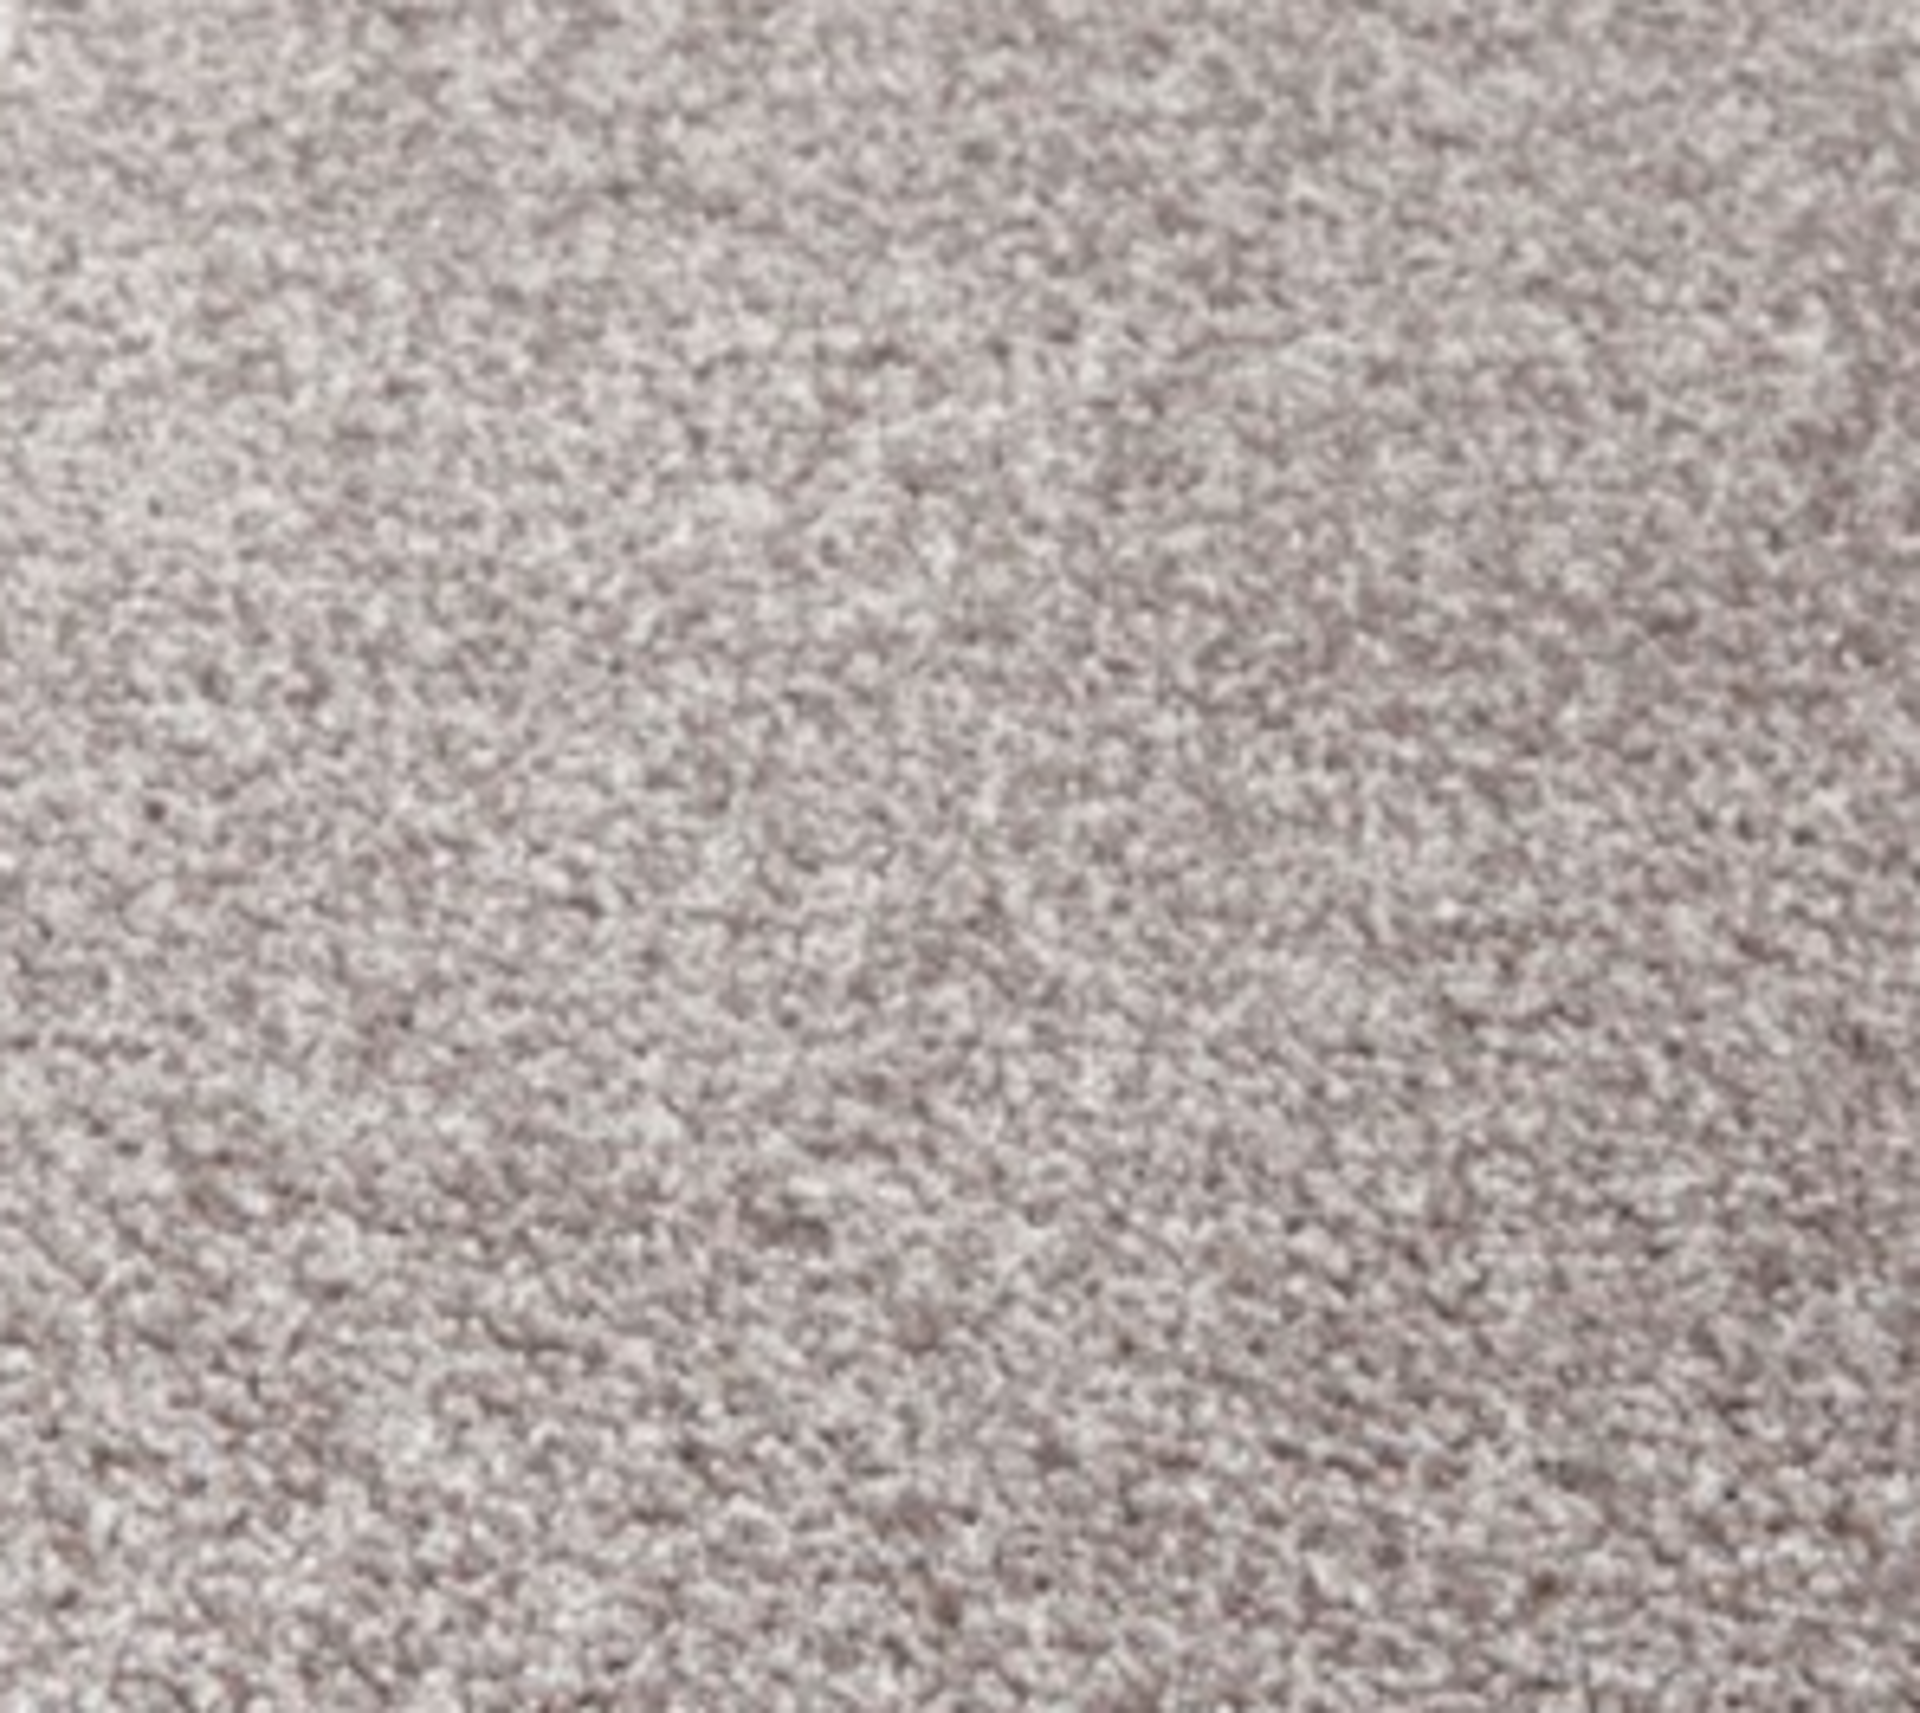 RRP £280 Bagged And Rolled Zdisc Monmouth Twist Grey Squirrex 5M X 1.38M Carpet (676156)